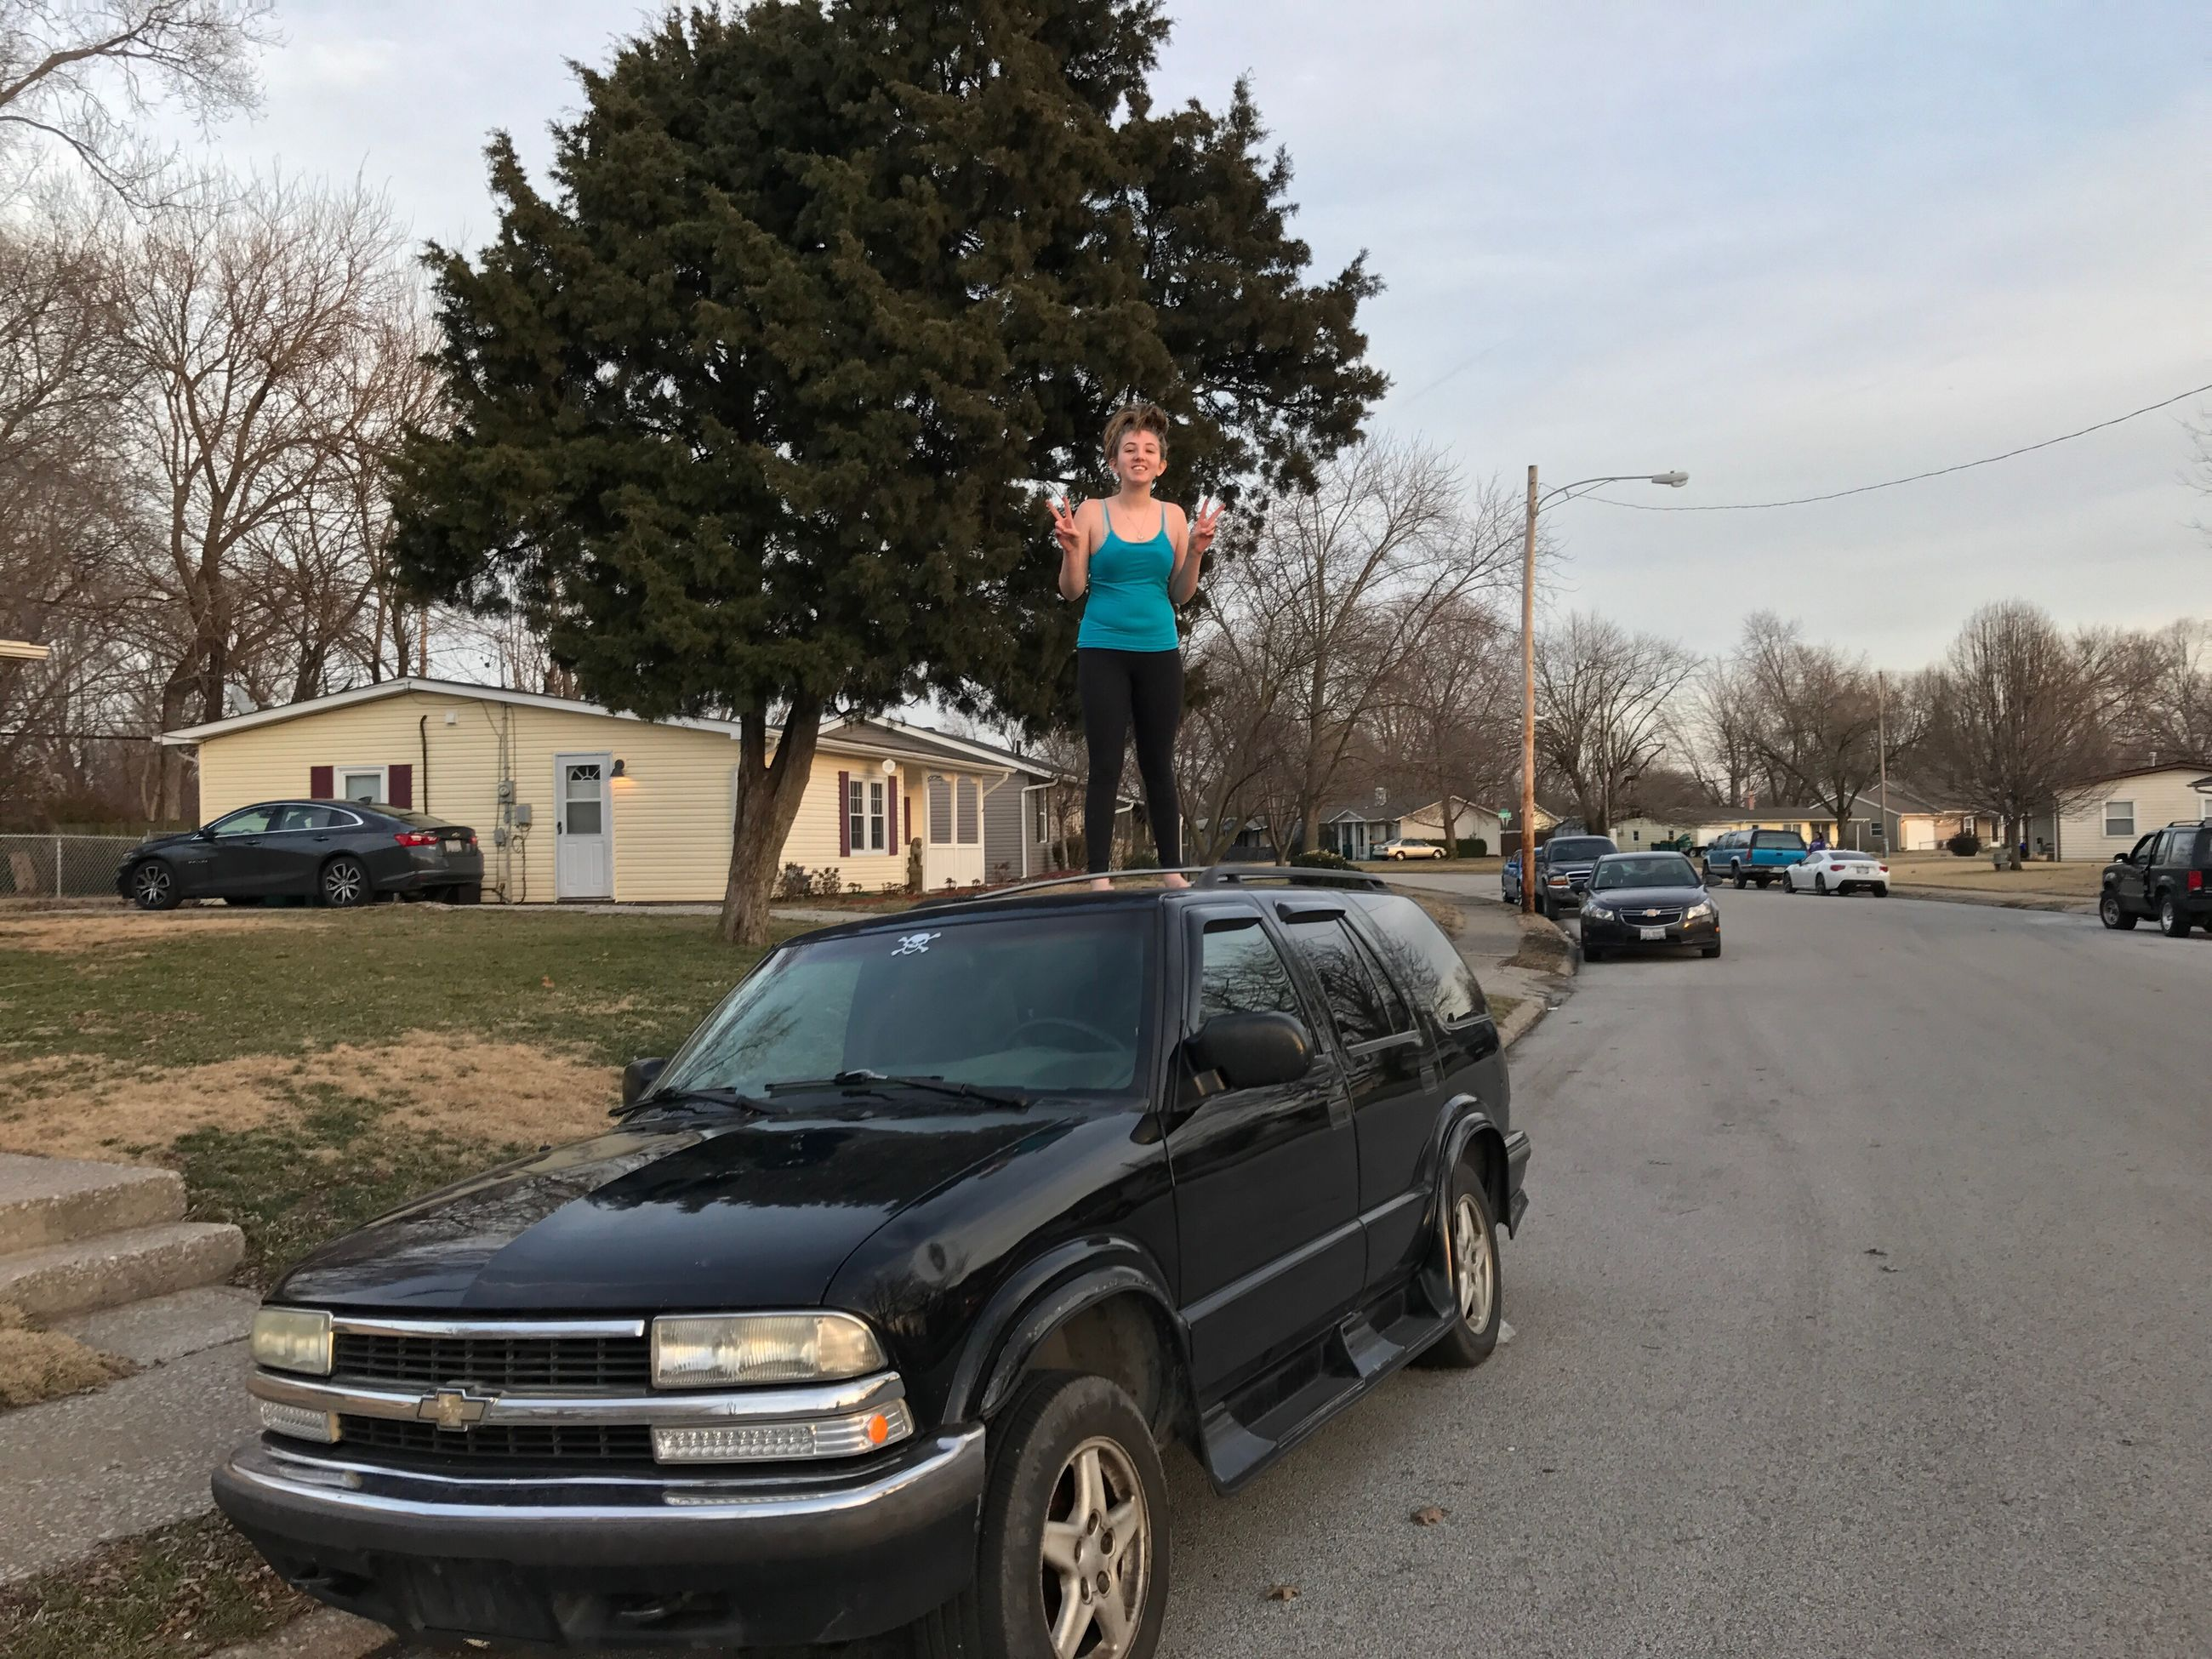 car, tree, transportation, stationary, police force, mode of transport, only men, adults only, sky, outdoors, one person, day, people, adult